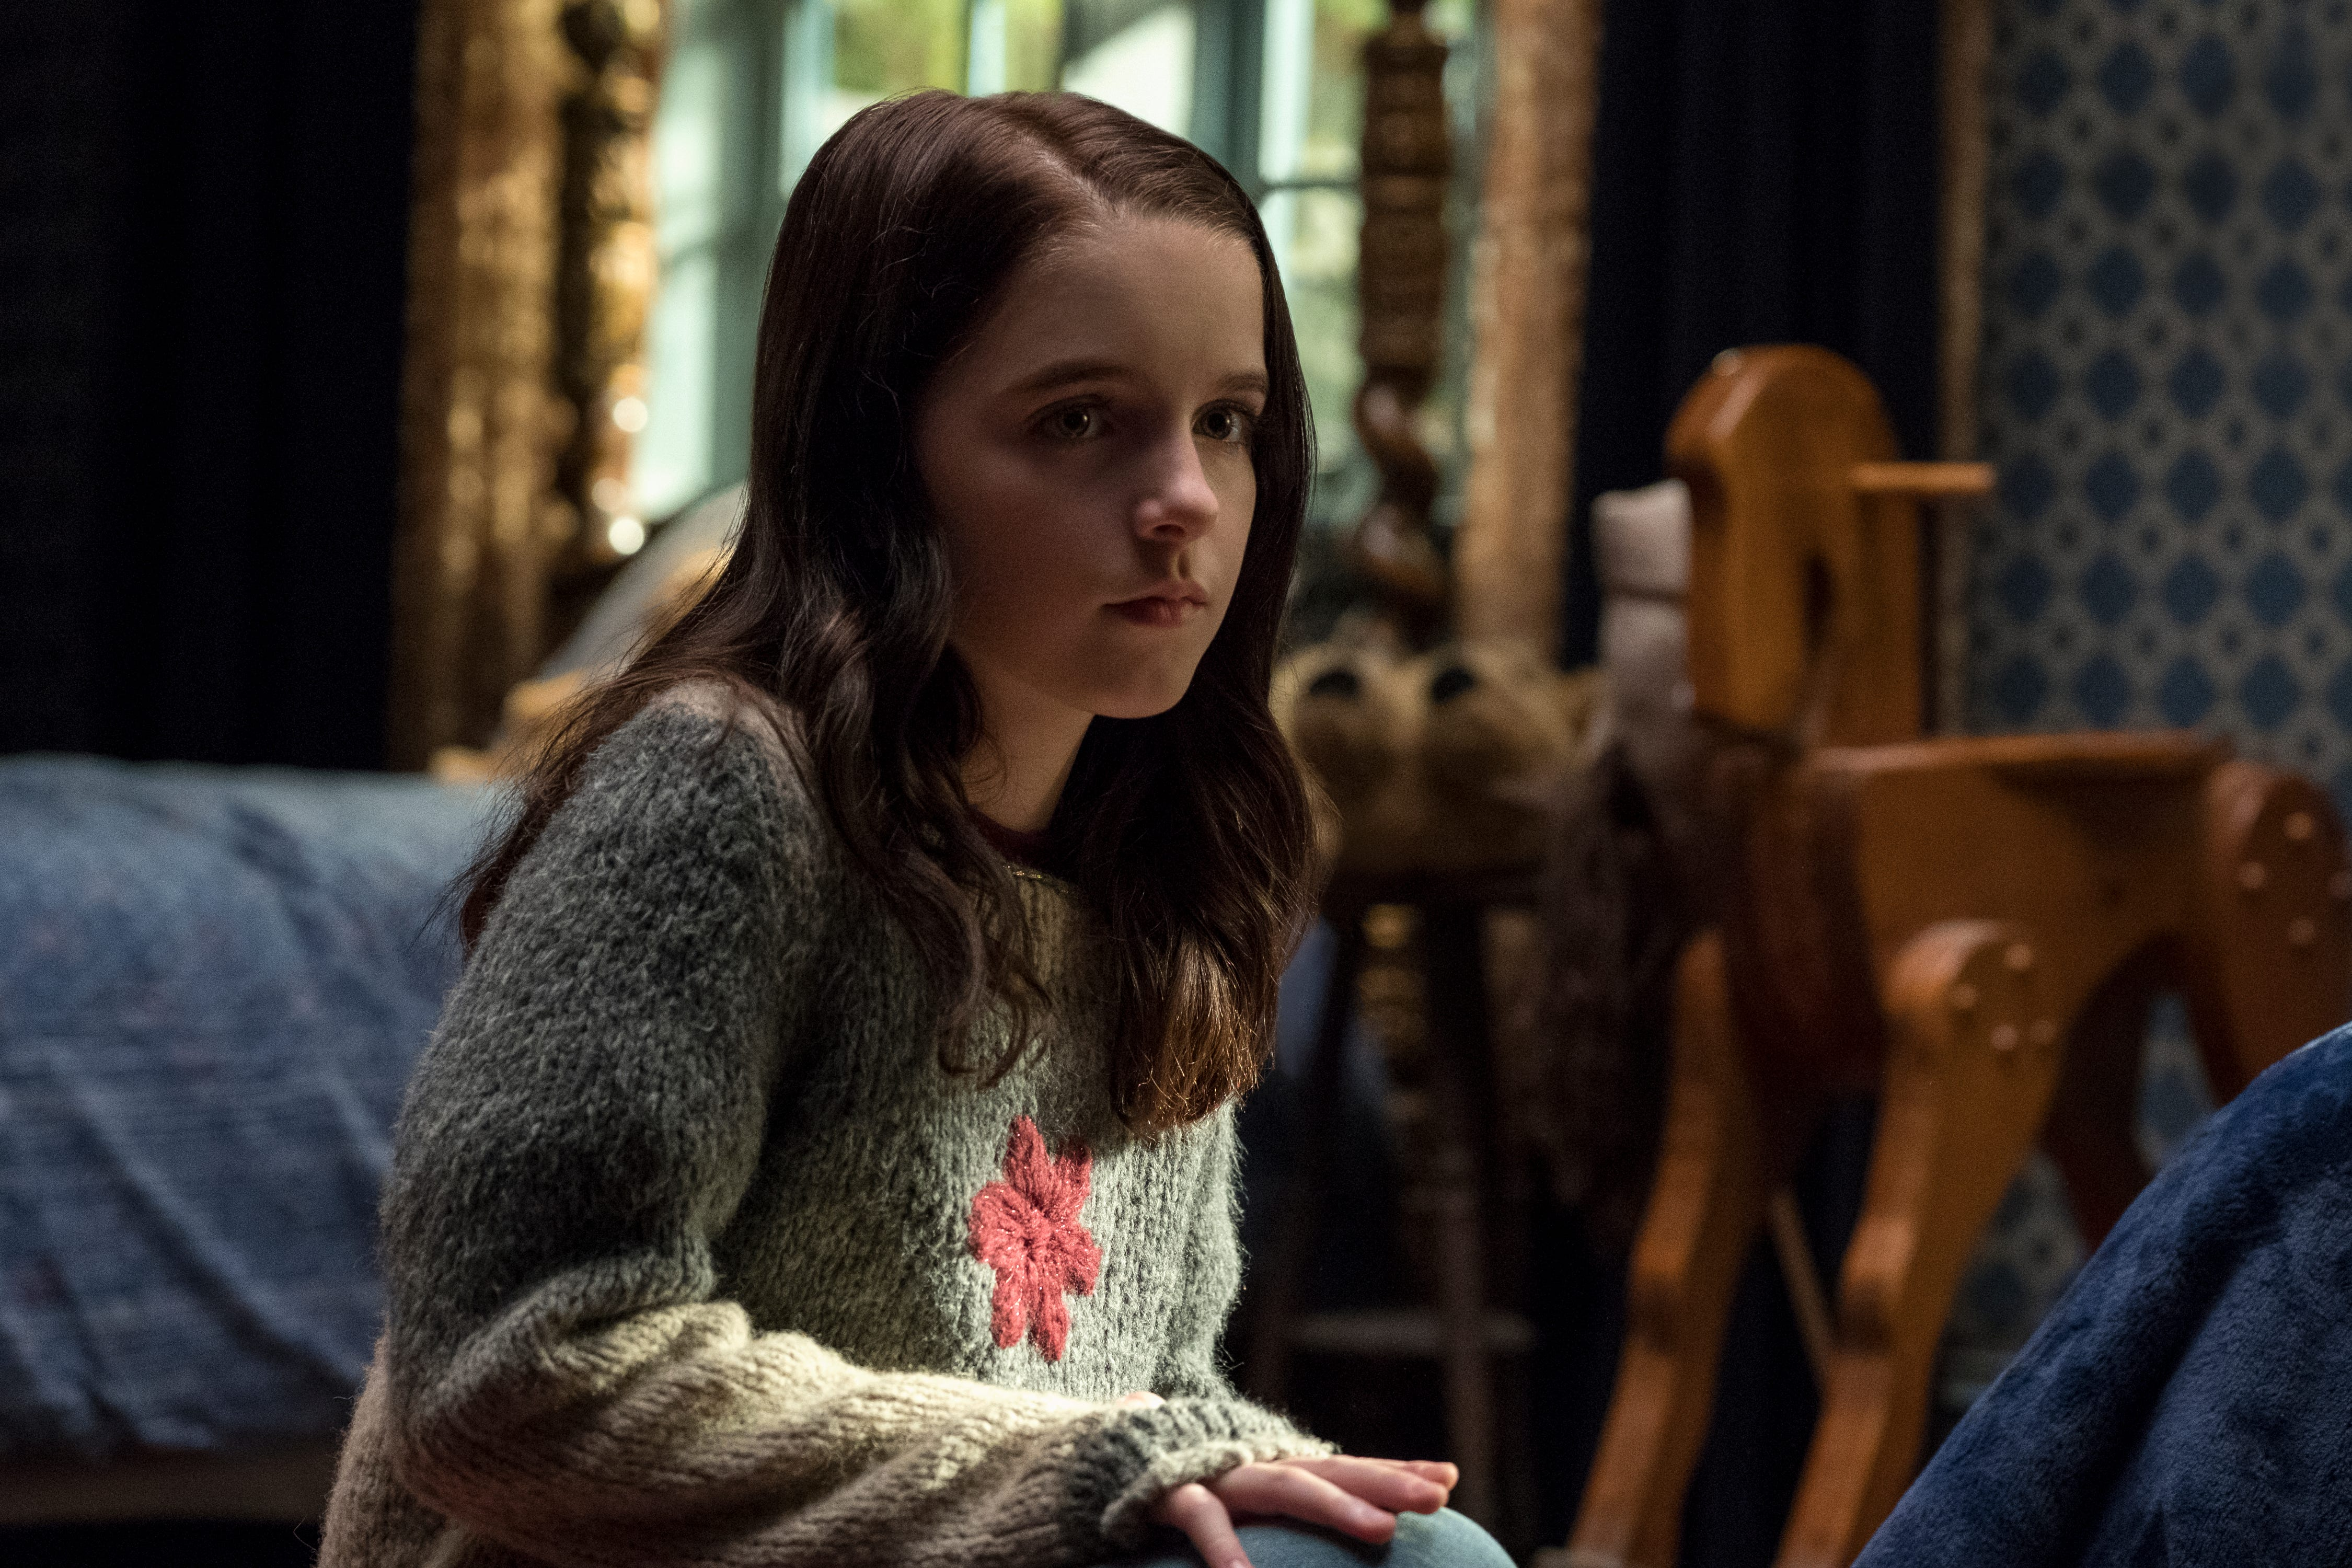 Haunting Of Hill House Cast Guide To New Netflix Series